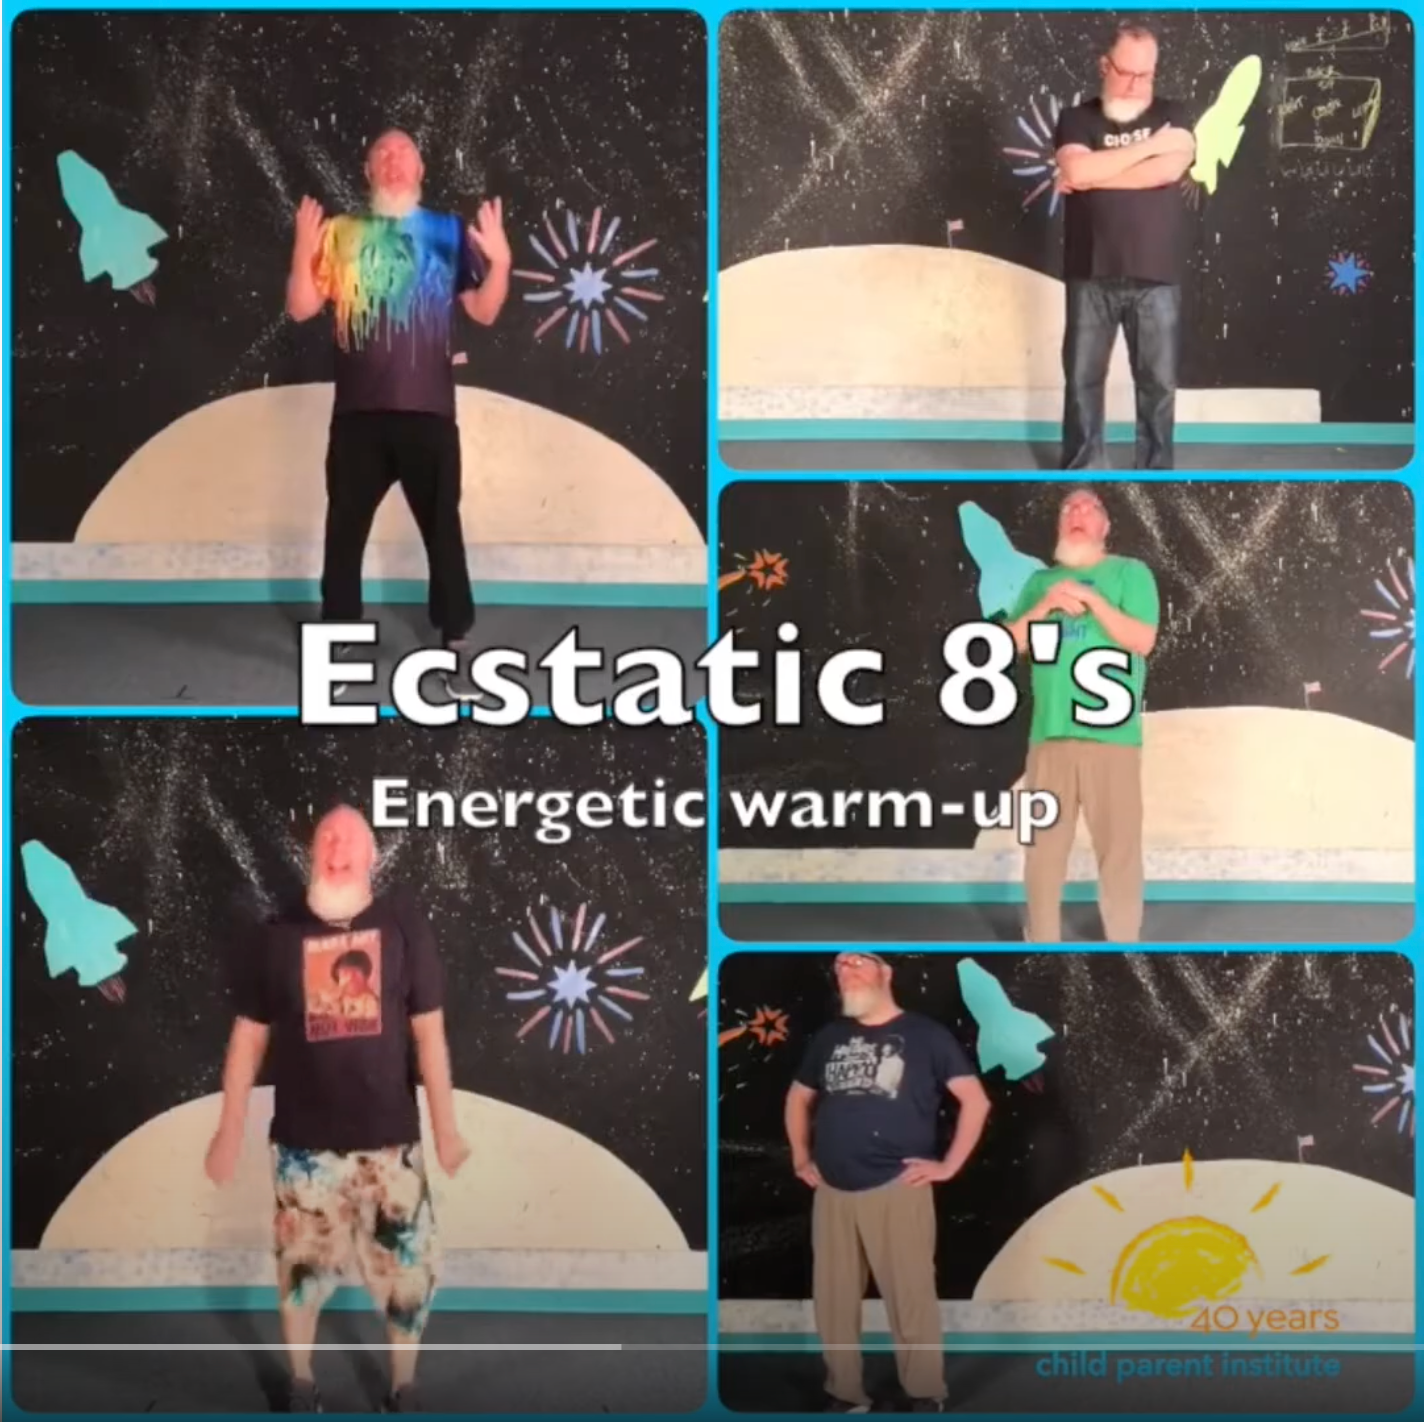 Ecstatic Eights